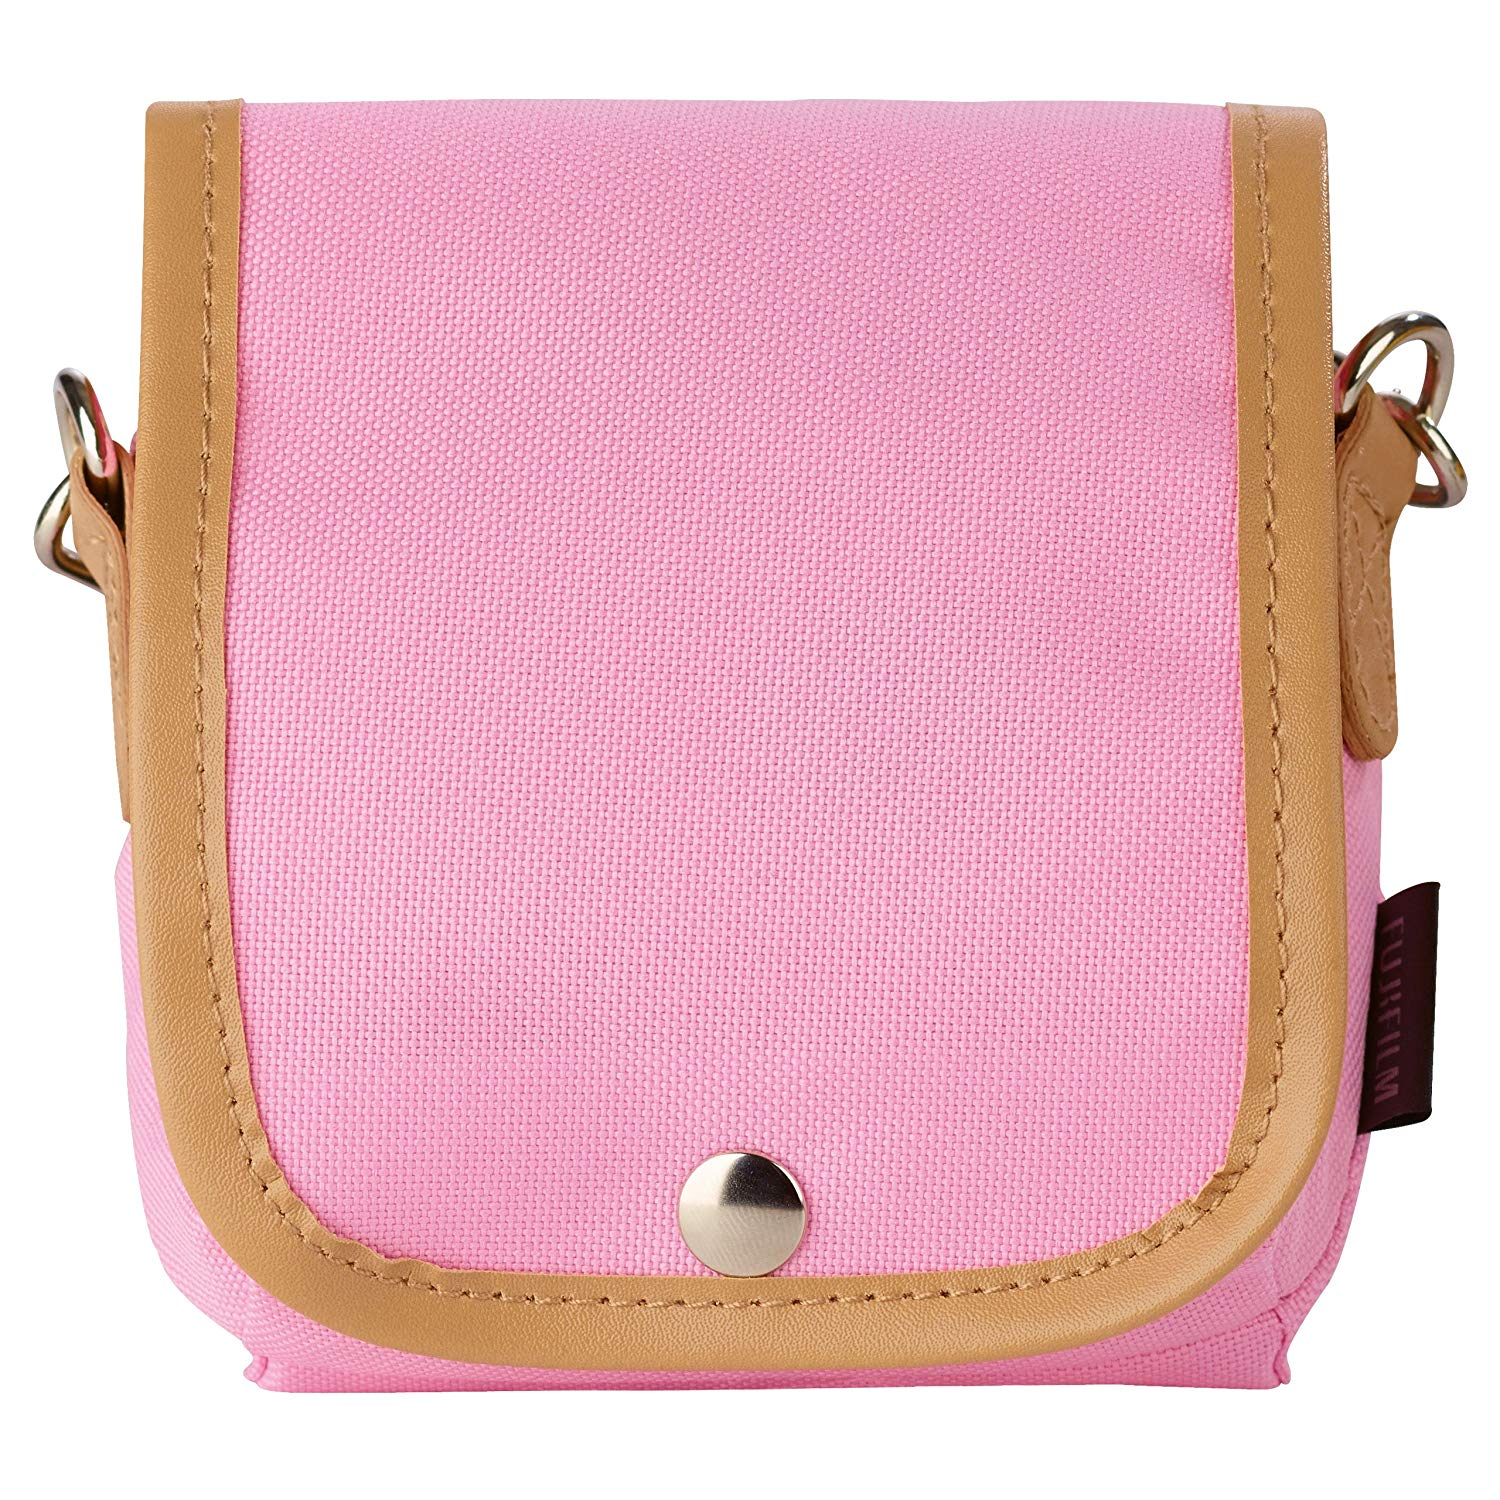 Fujifilm Softcase with Strap for Instax Mini 8 - Pink